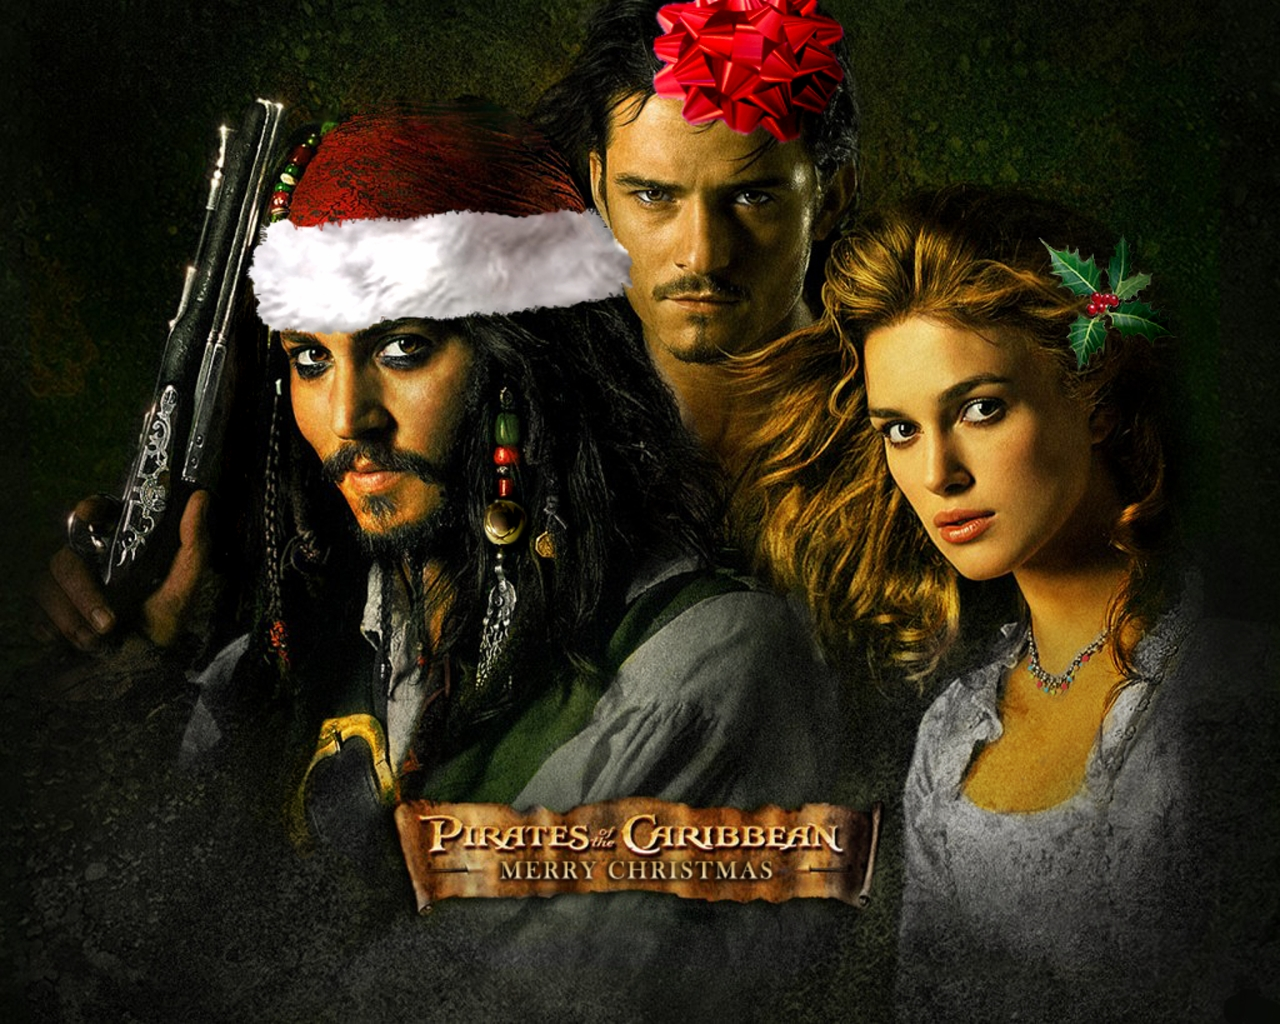 Piracy of the Caribbean - merry christmas